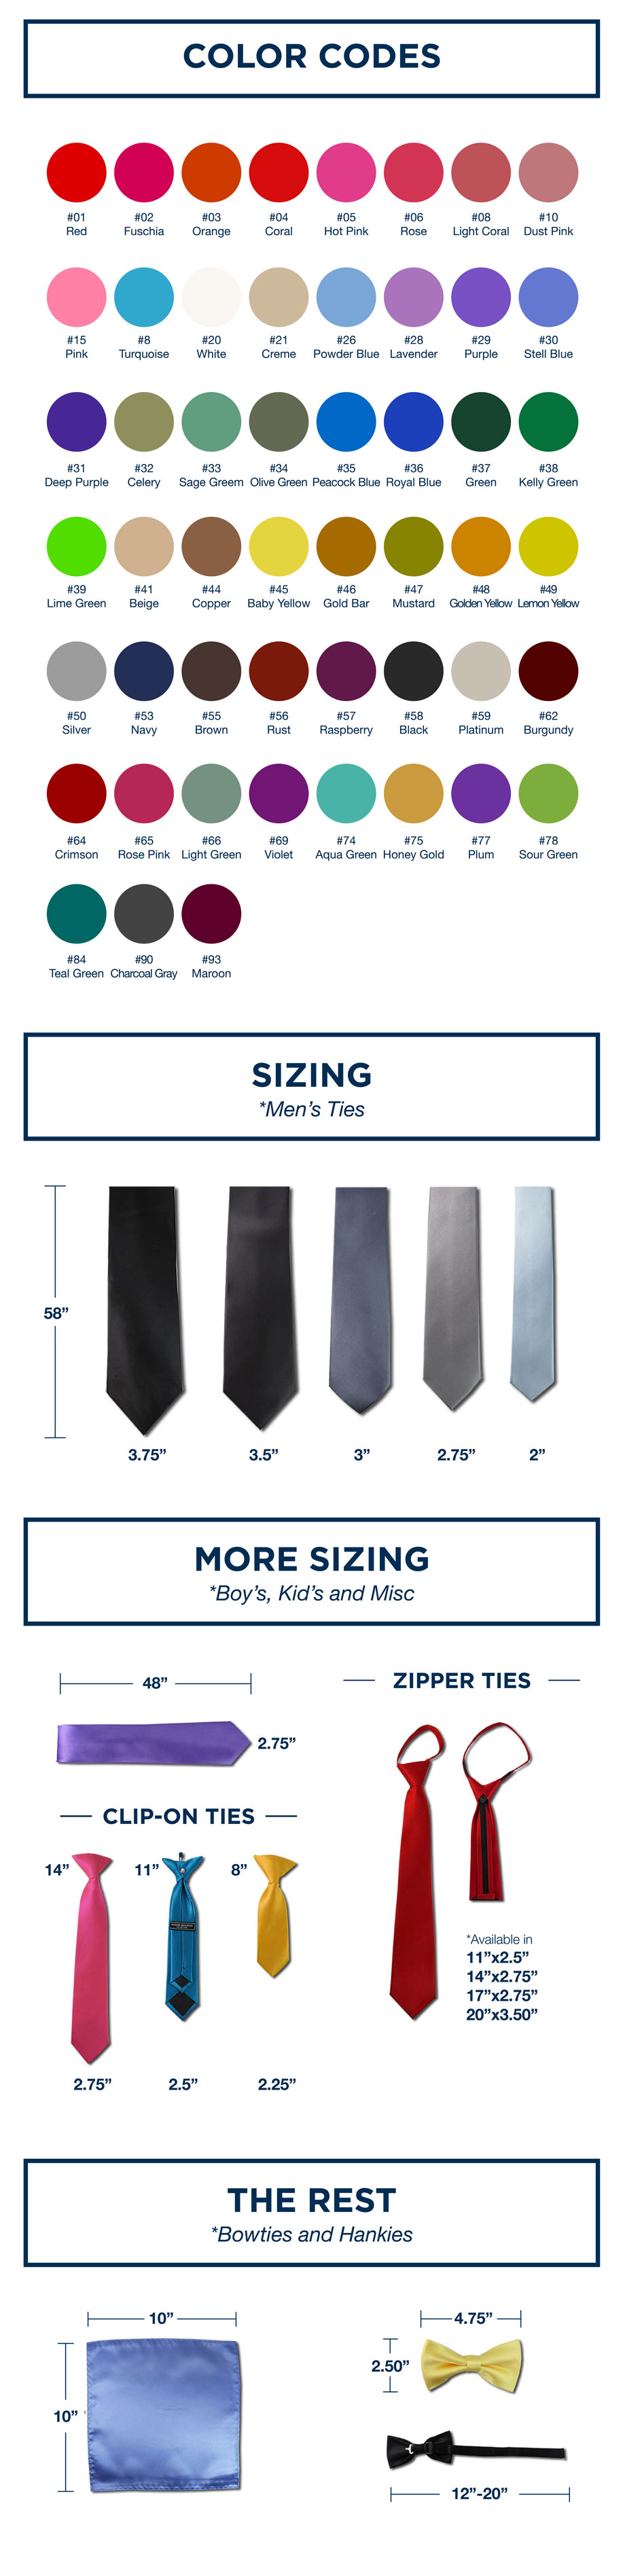 Sizing & Colors